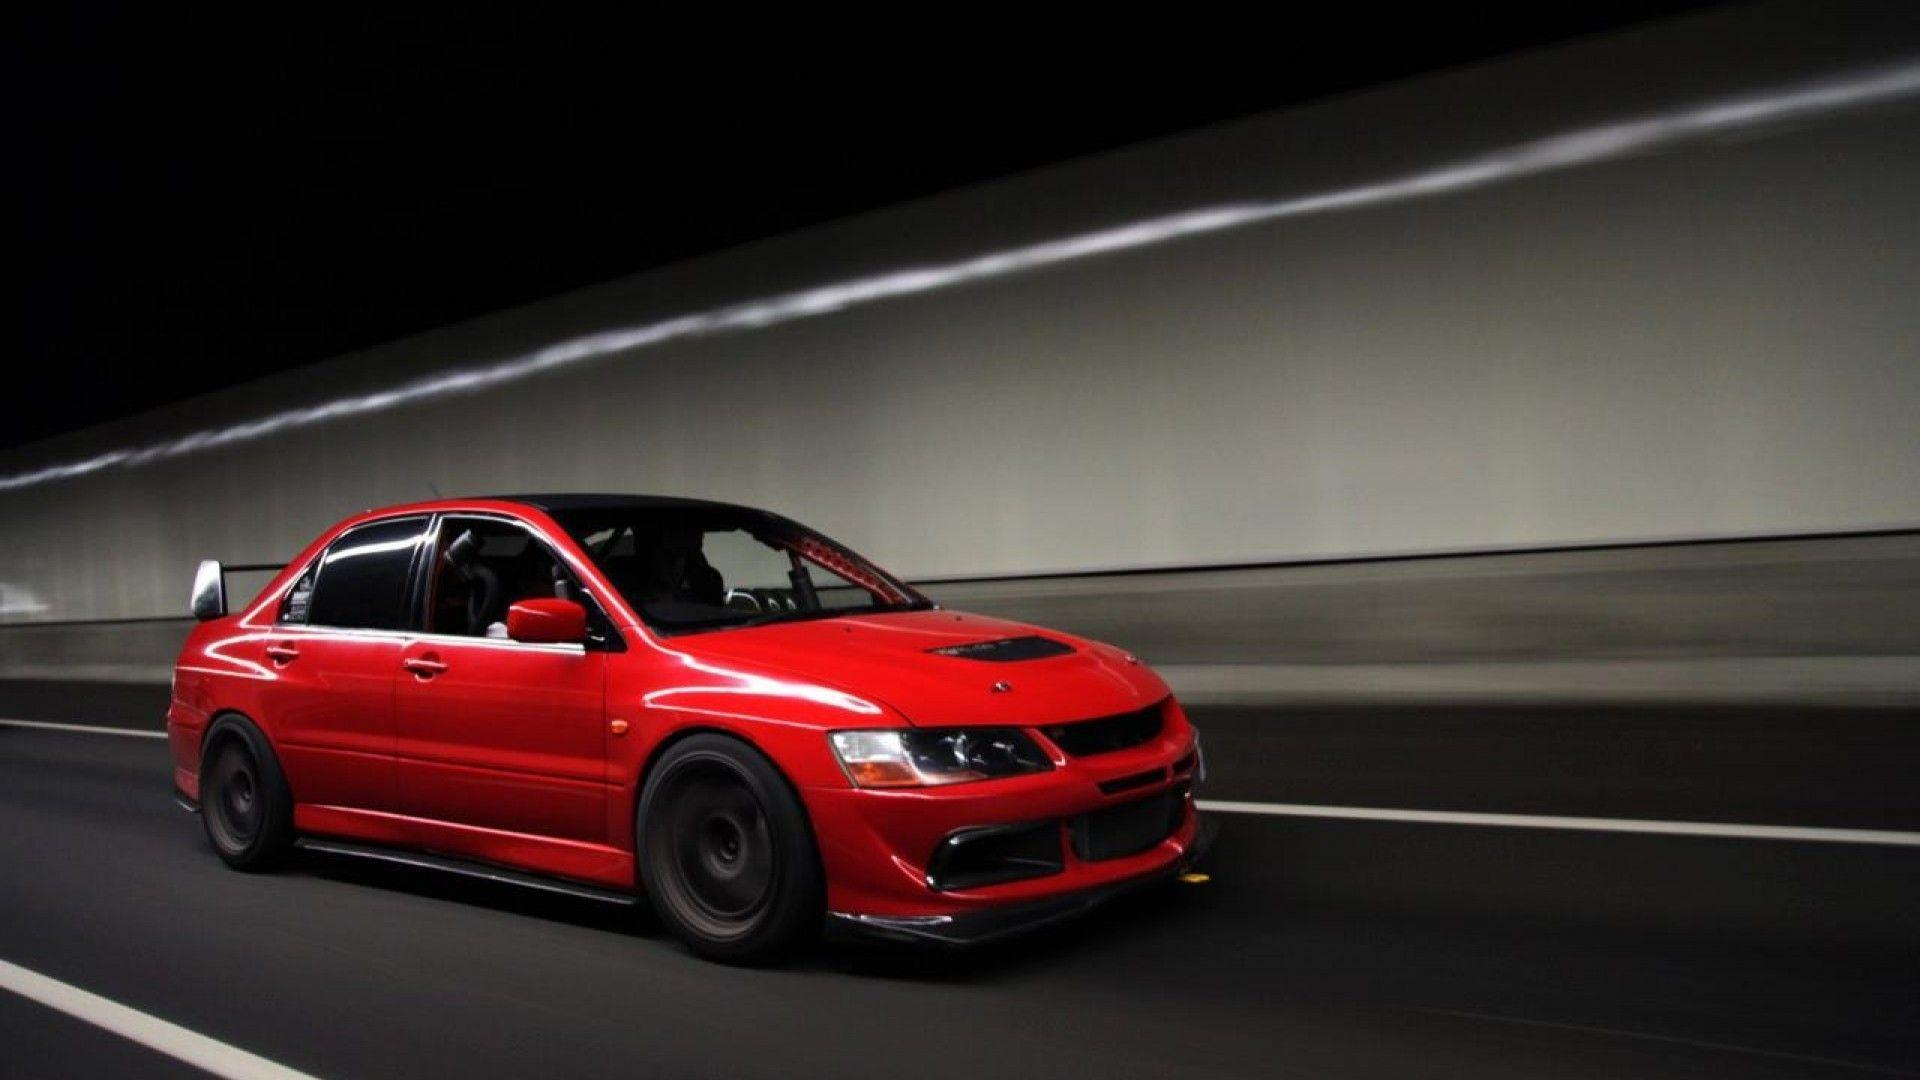 Lancer Evo Wallpapers - Wallpaper Cave